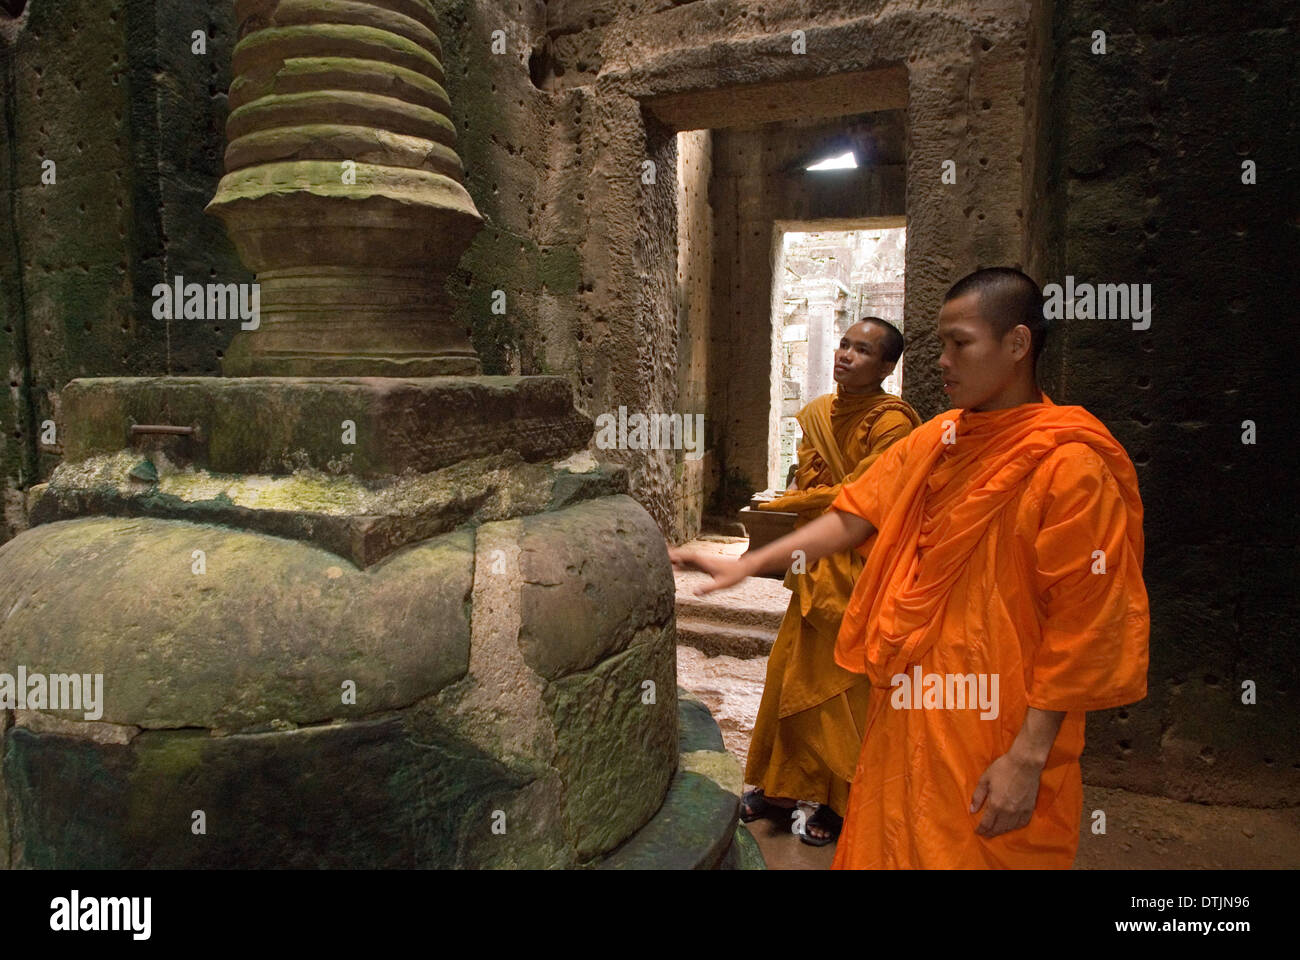 Two Buddhist monks in the inner part of the Temple Preah Khan. Bakan or Preah Khan Kampong Svay Temple. The Bakan temples are lo - Stock Image